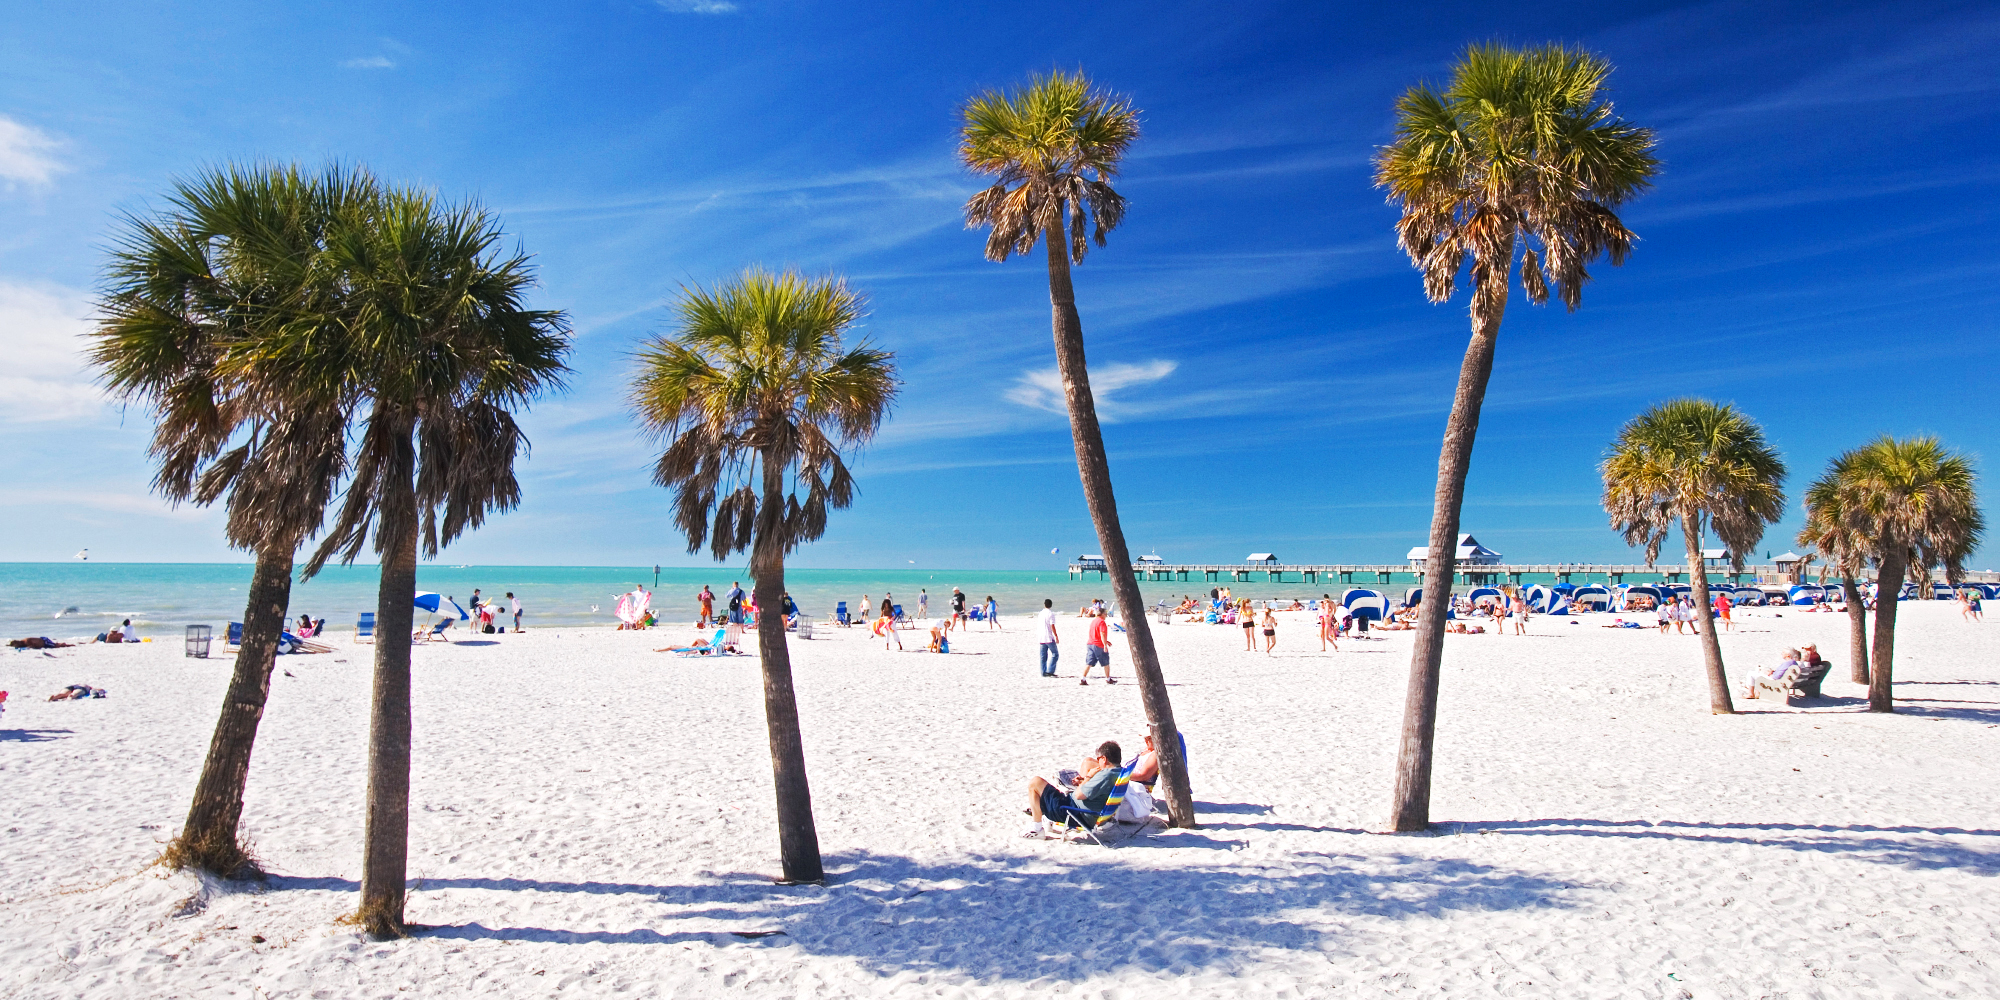 14 best florida beaches of 2018 most beautiful beaches for Top beach towns in florida